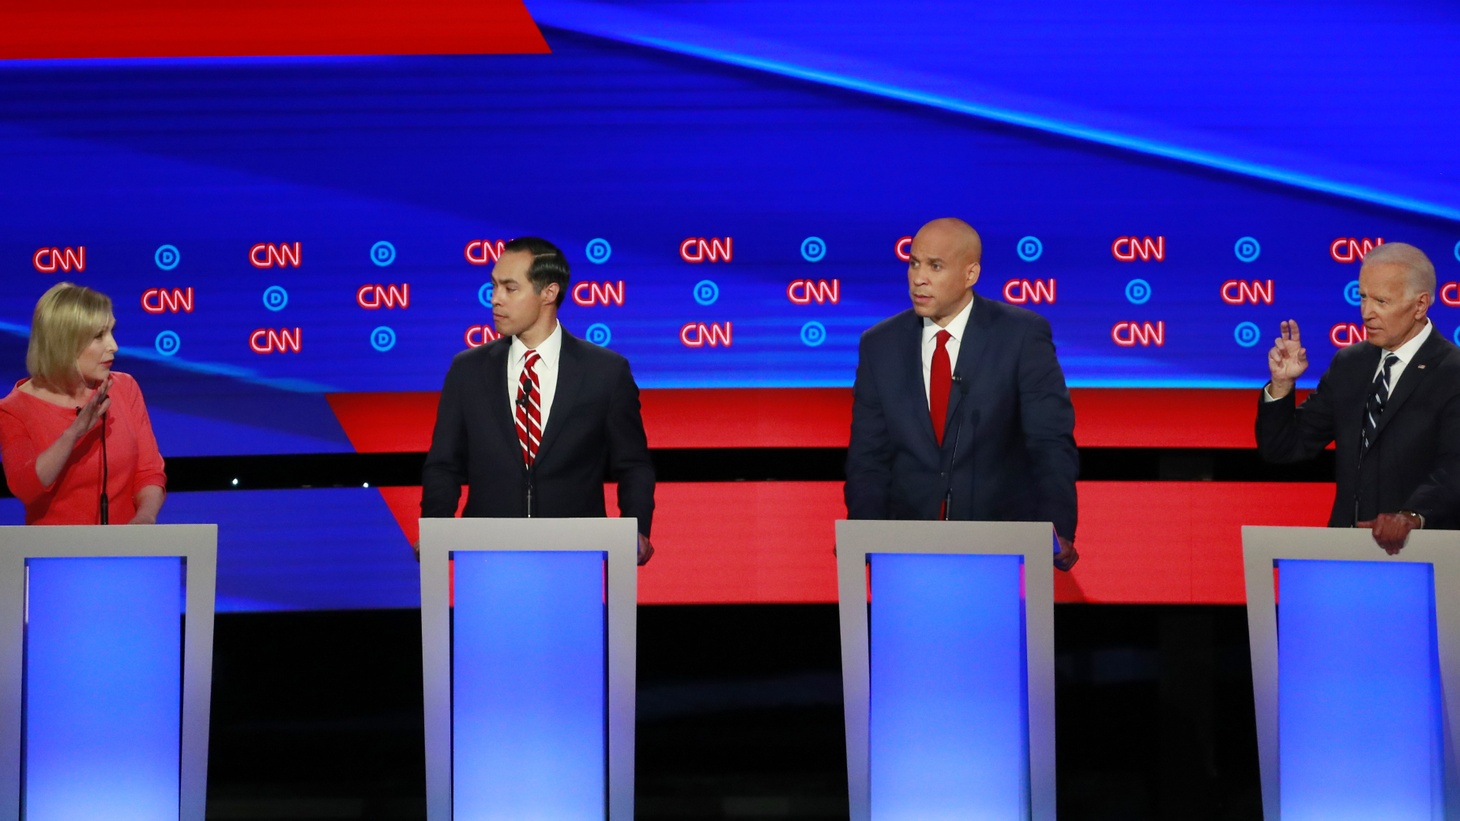 U.S. Senator Kirsten Gillibrand talks to former Vice President Joe Biden (R) past former HUD Secretary Julian Castro (2nd L) and U.S. Senator Cory Booker (2nd R) on the second night of the second 2020 Democratic U.S. presidential debate in Detroit, Michigan, July 31, 2019.